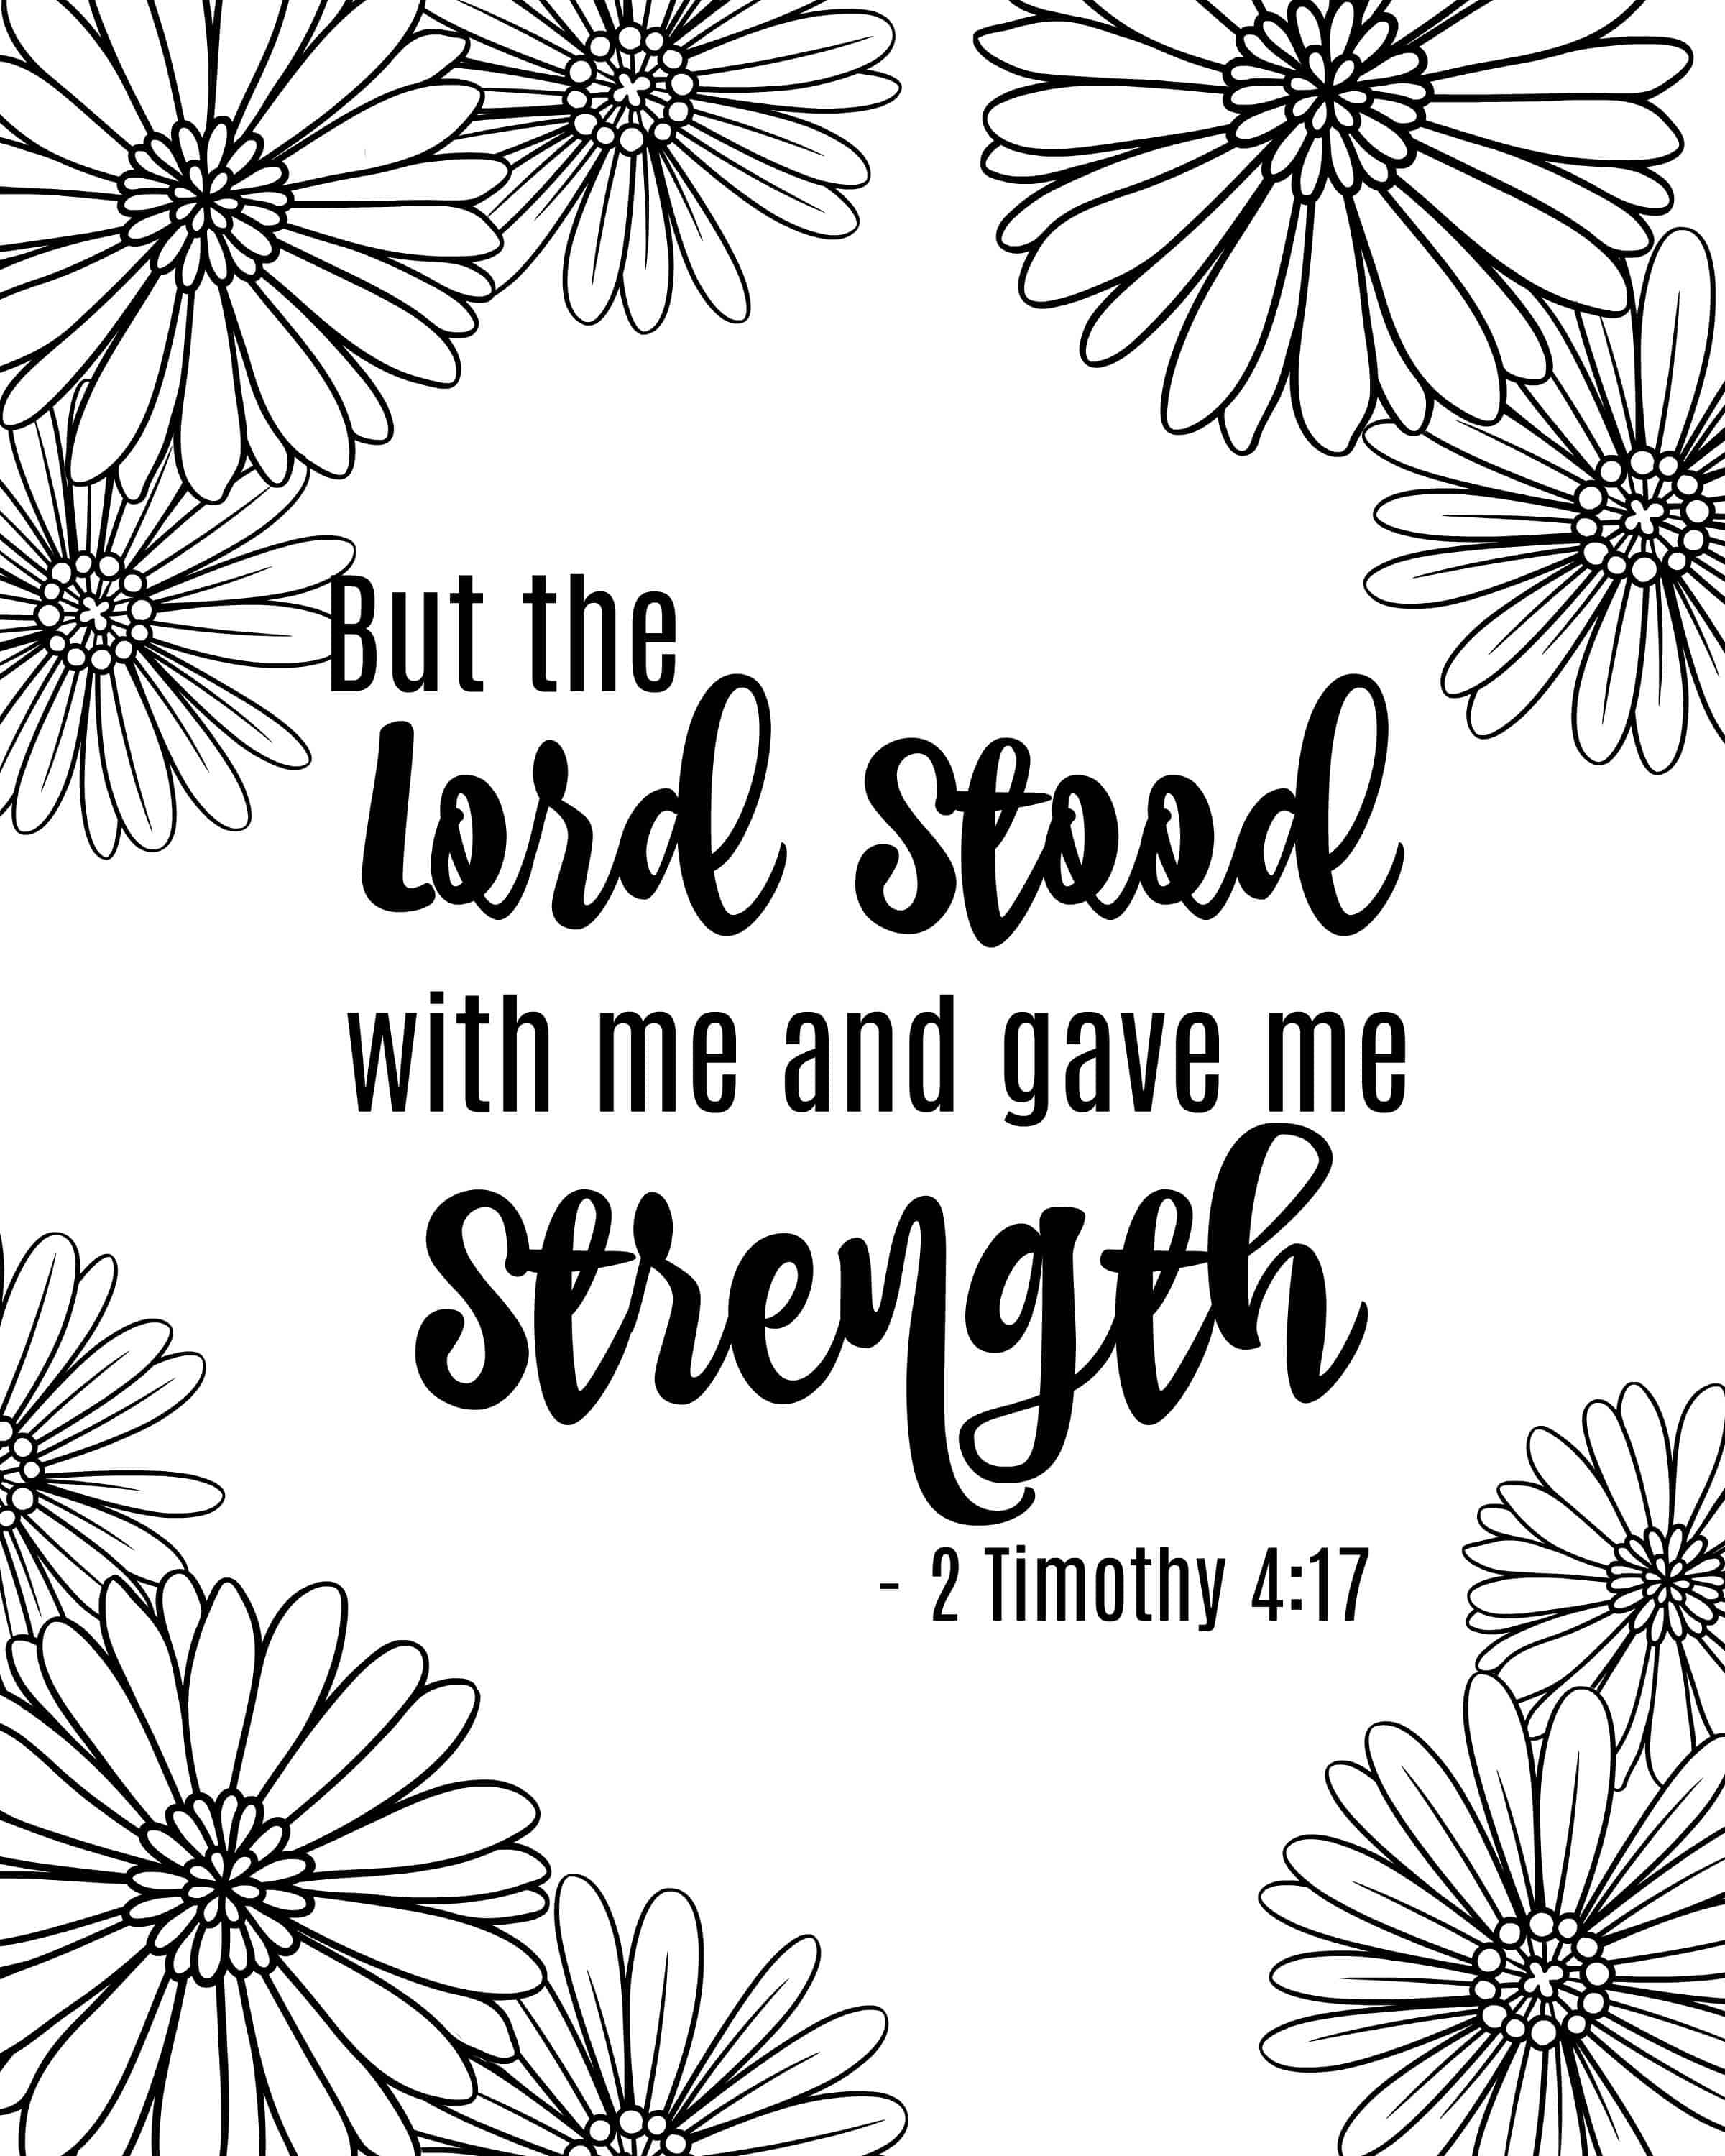 bible verse christian coloring pages free bible verse coloring pages for kids learning how to verse pages coloring christian bible